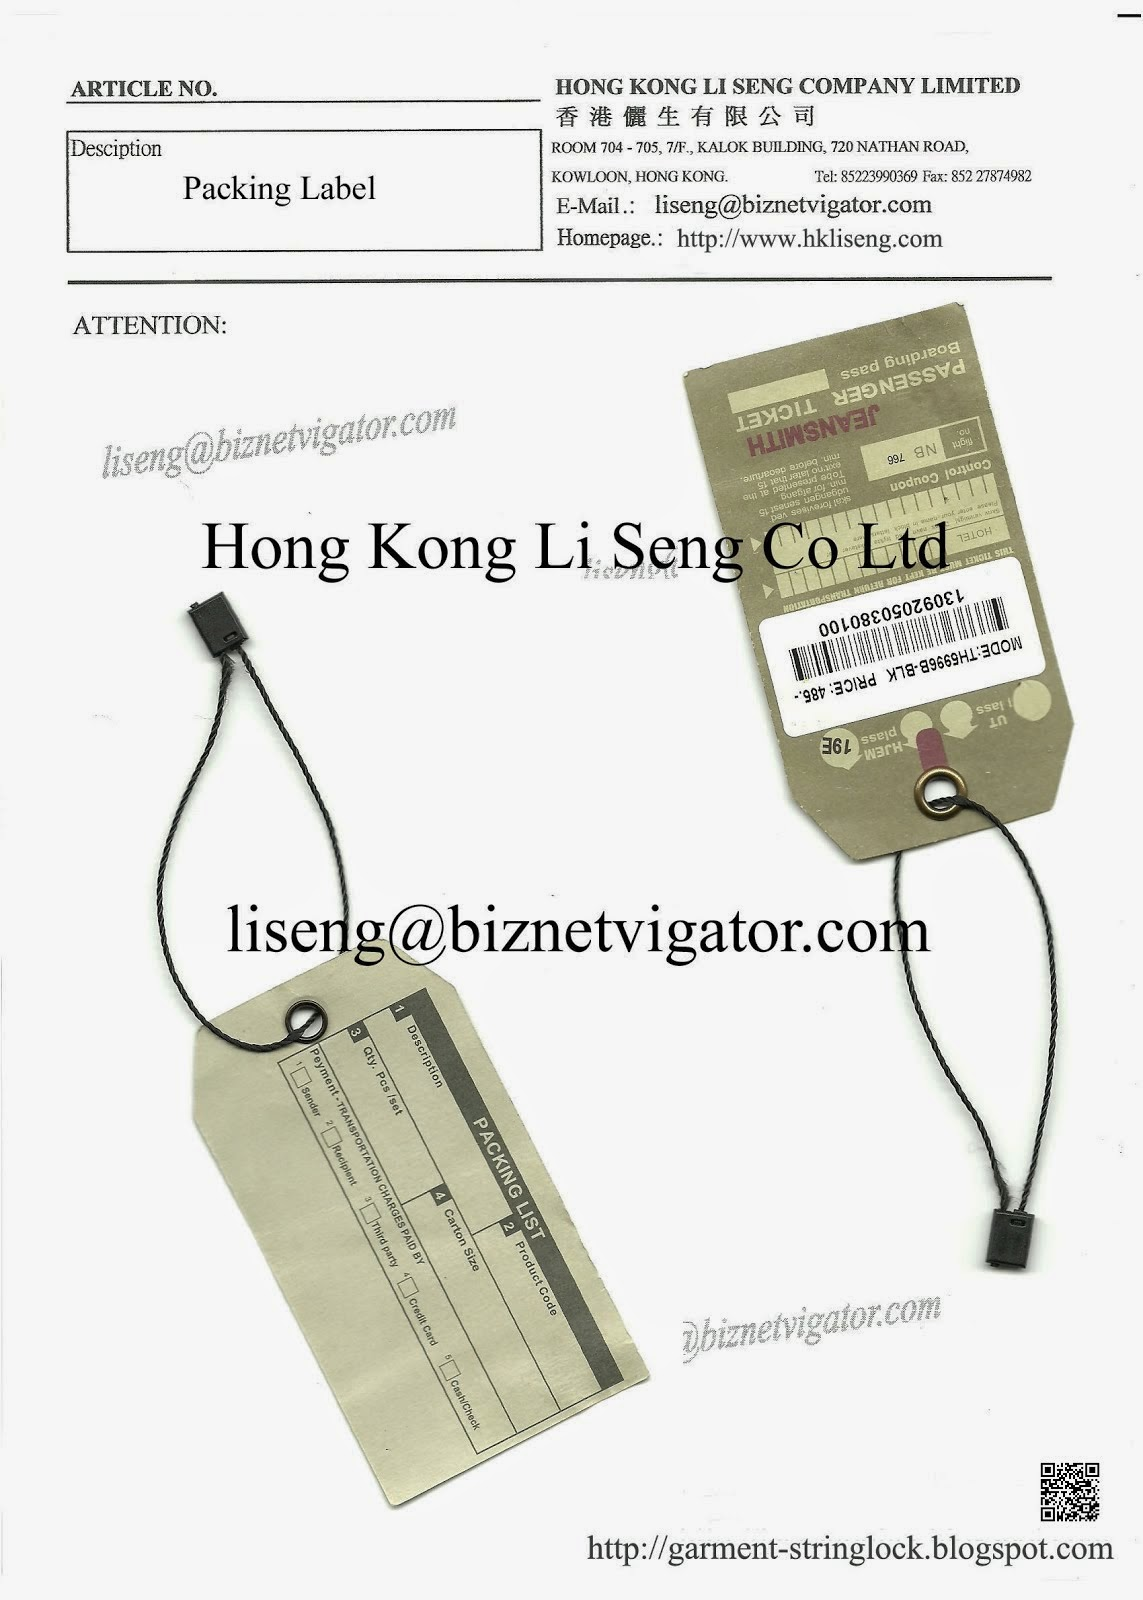 Garment String Lock Pin Manufacturer - Hong Kong Li Seng Co Ltd